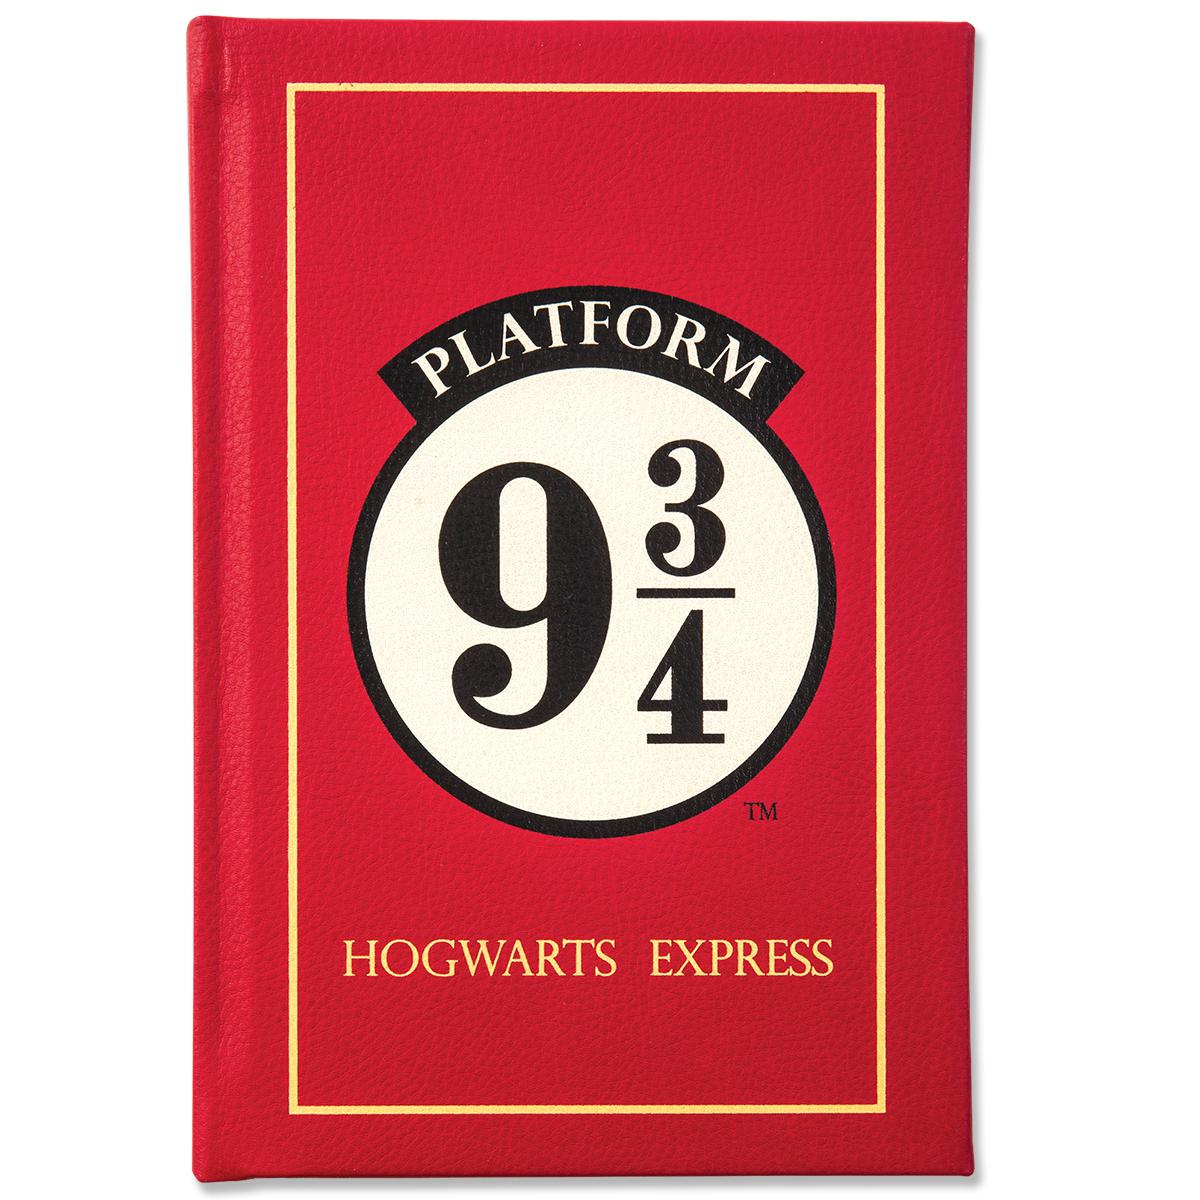 Harry Potter: Platform 9 ¾ Journal